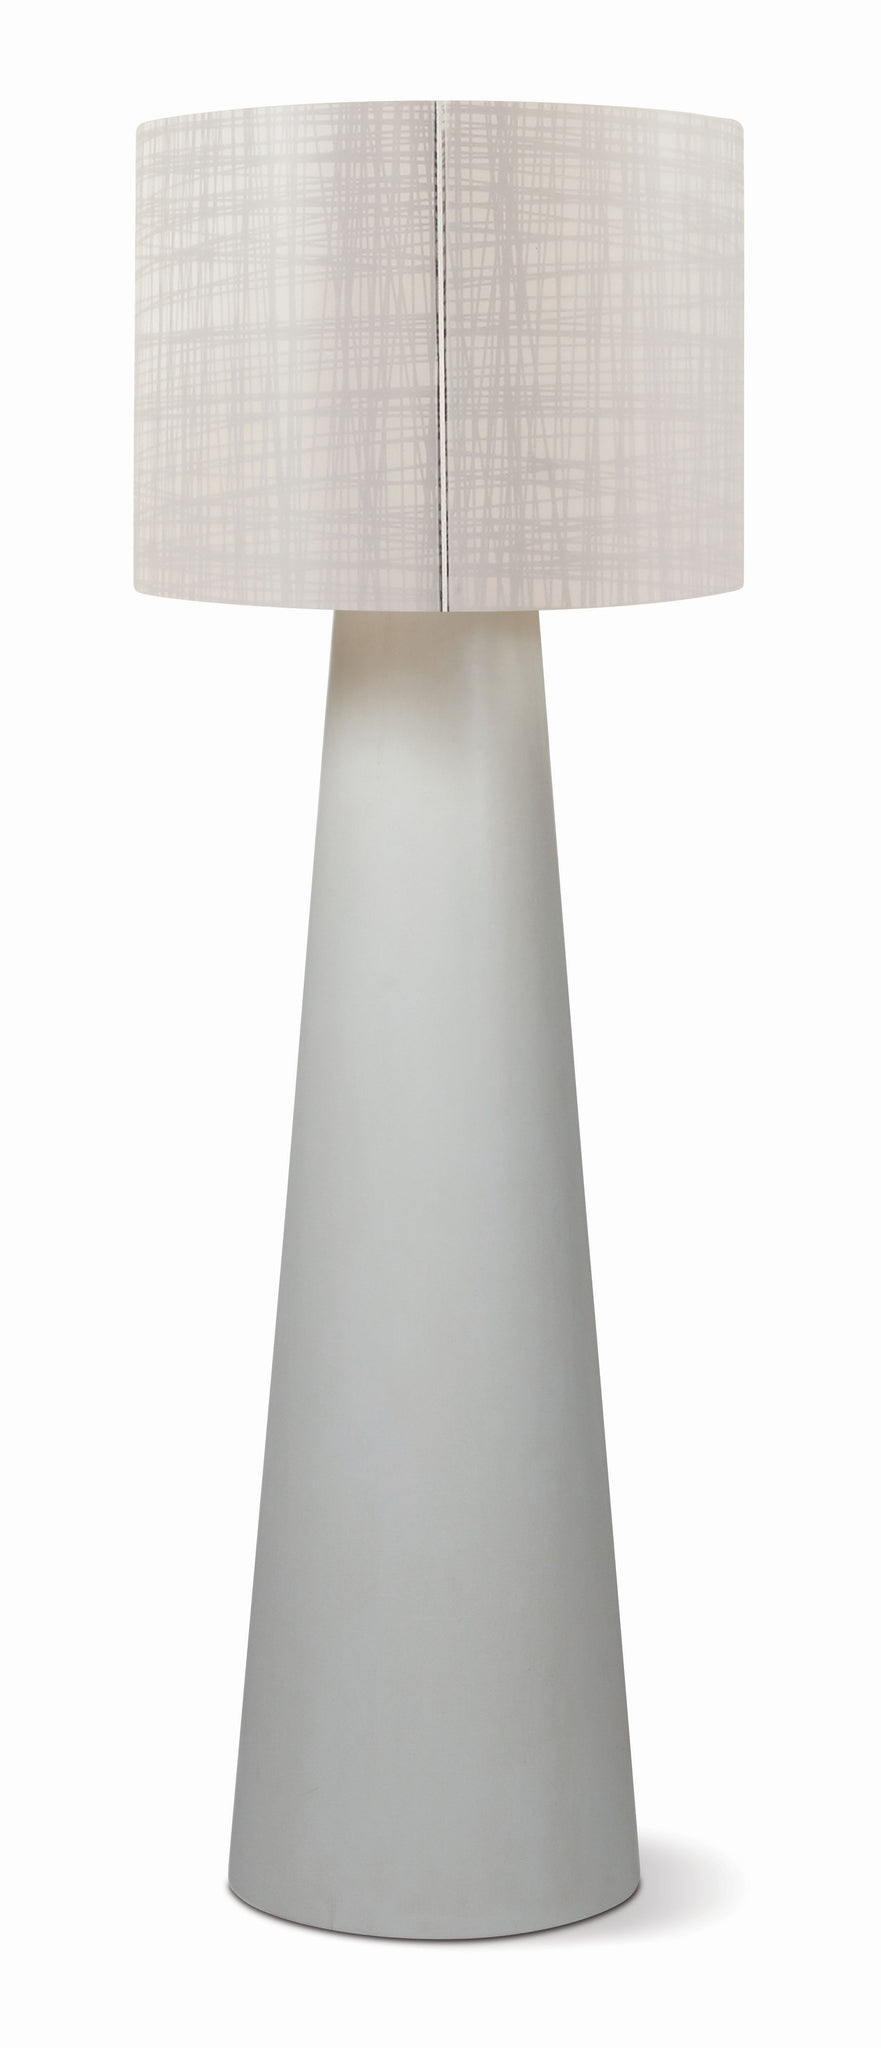 Inda cordless outdoor led floor lamp in various colors shades by bd outdoor